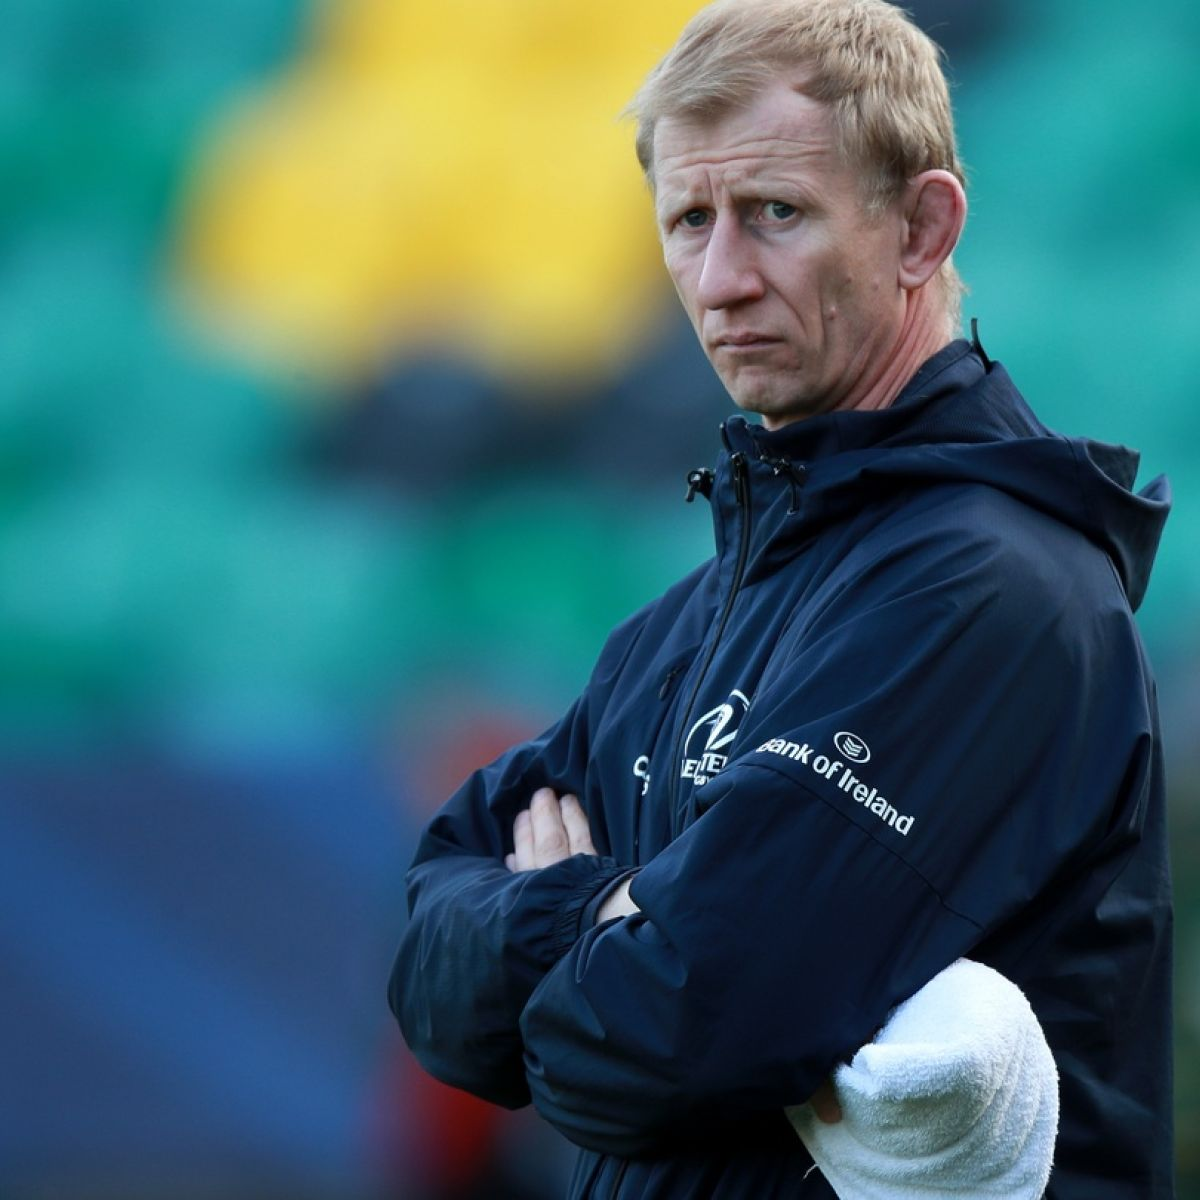 Leo Cullen happy to see South Africans join Pro14